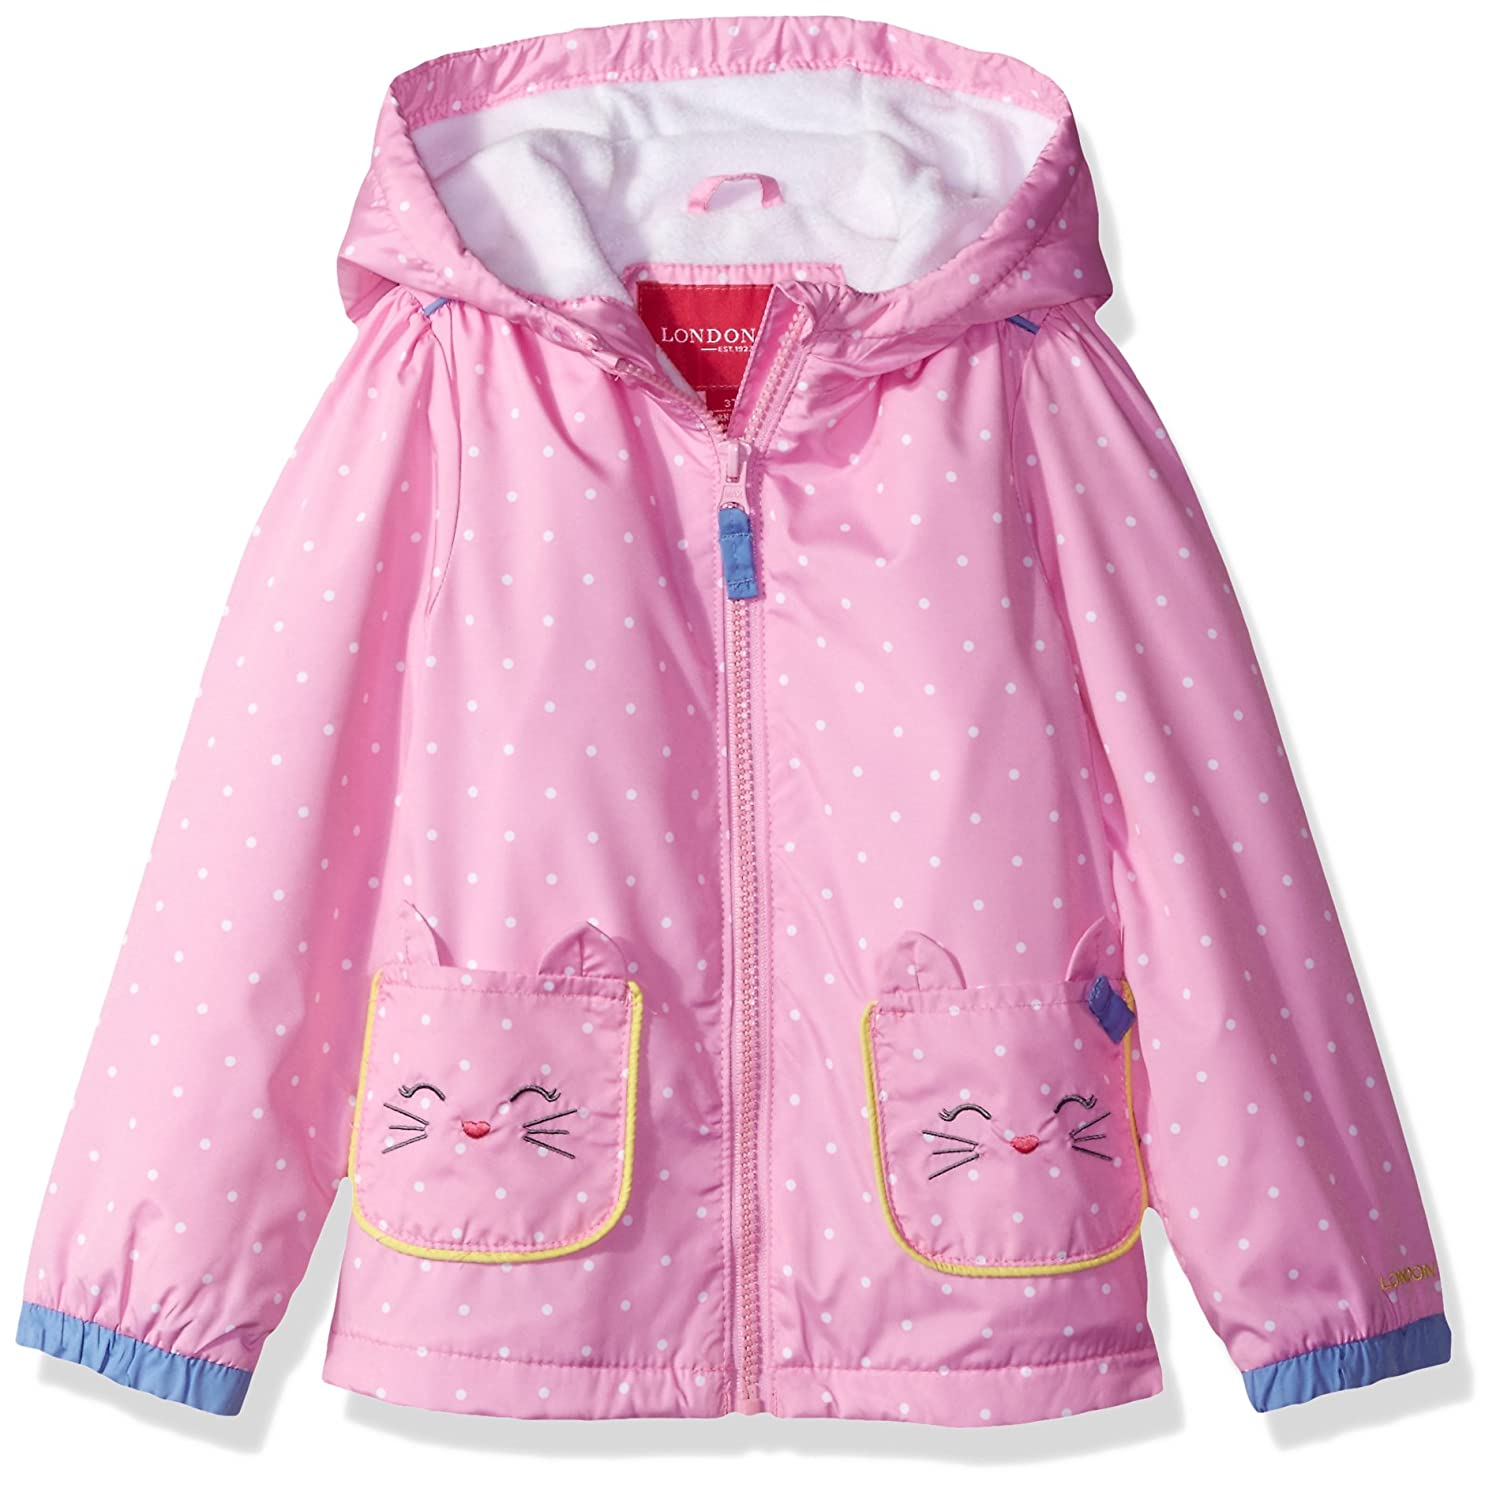 London Fog Baby Girls' Midweight Kitty Ears Jacket London Fog (Amerex) Children' s Apparel L117G20